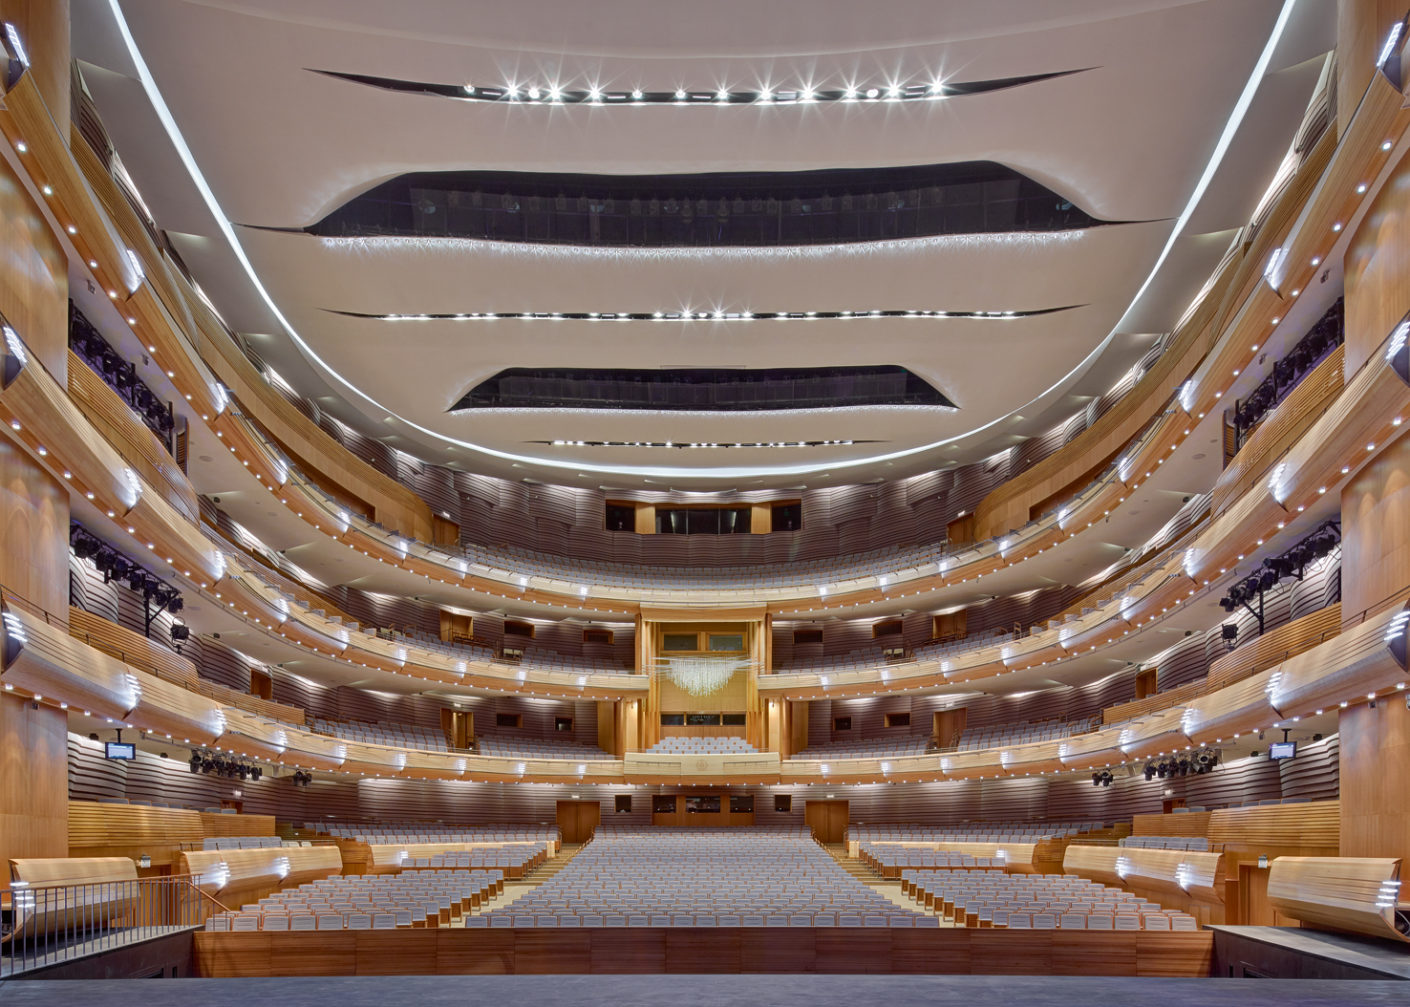 The auditorium with its classic horseshoe shape boasts outstanding acoustics.